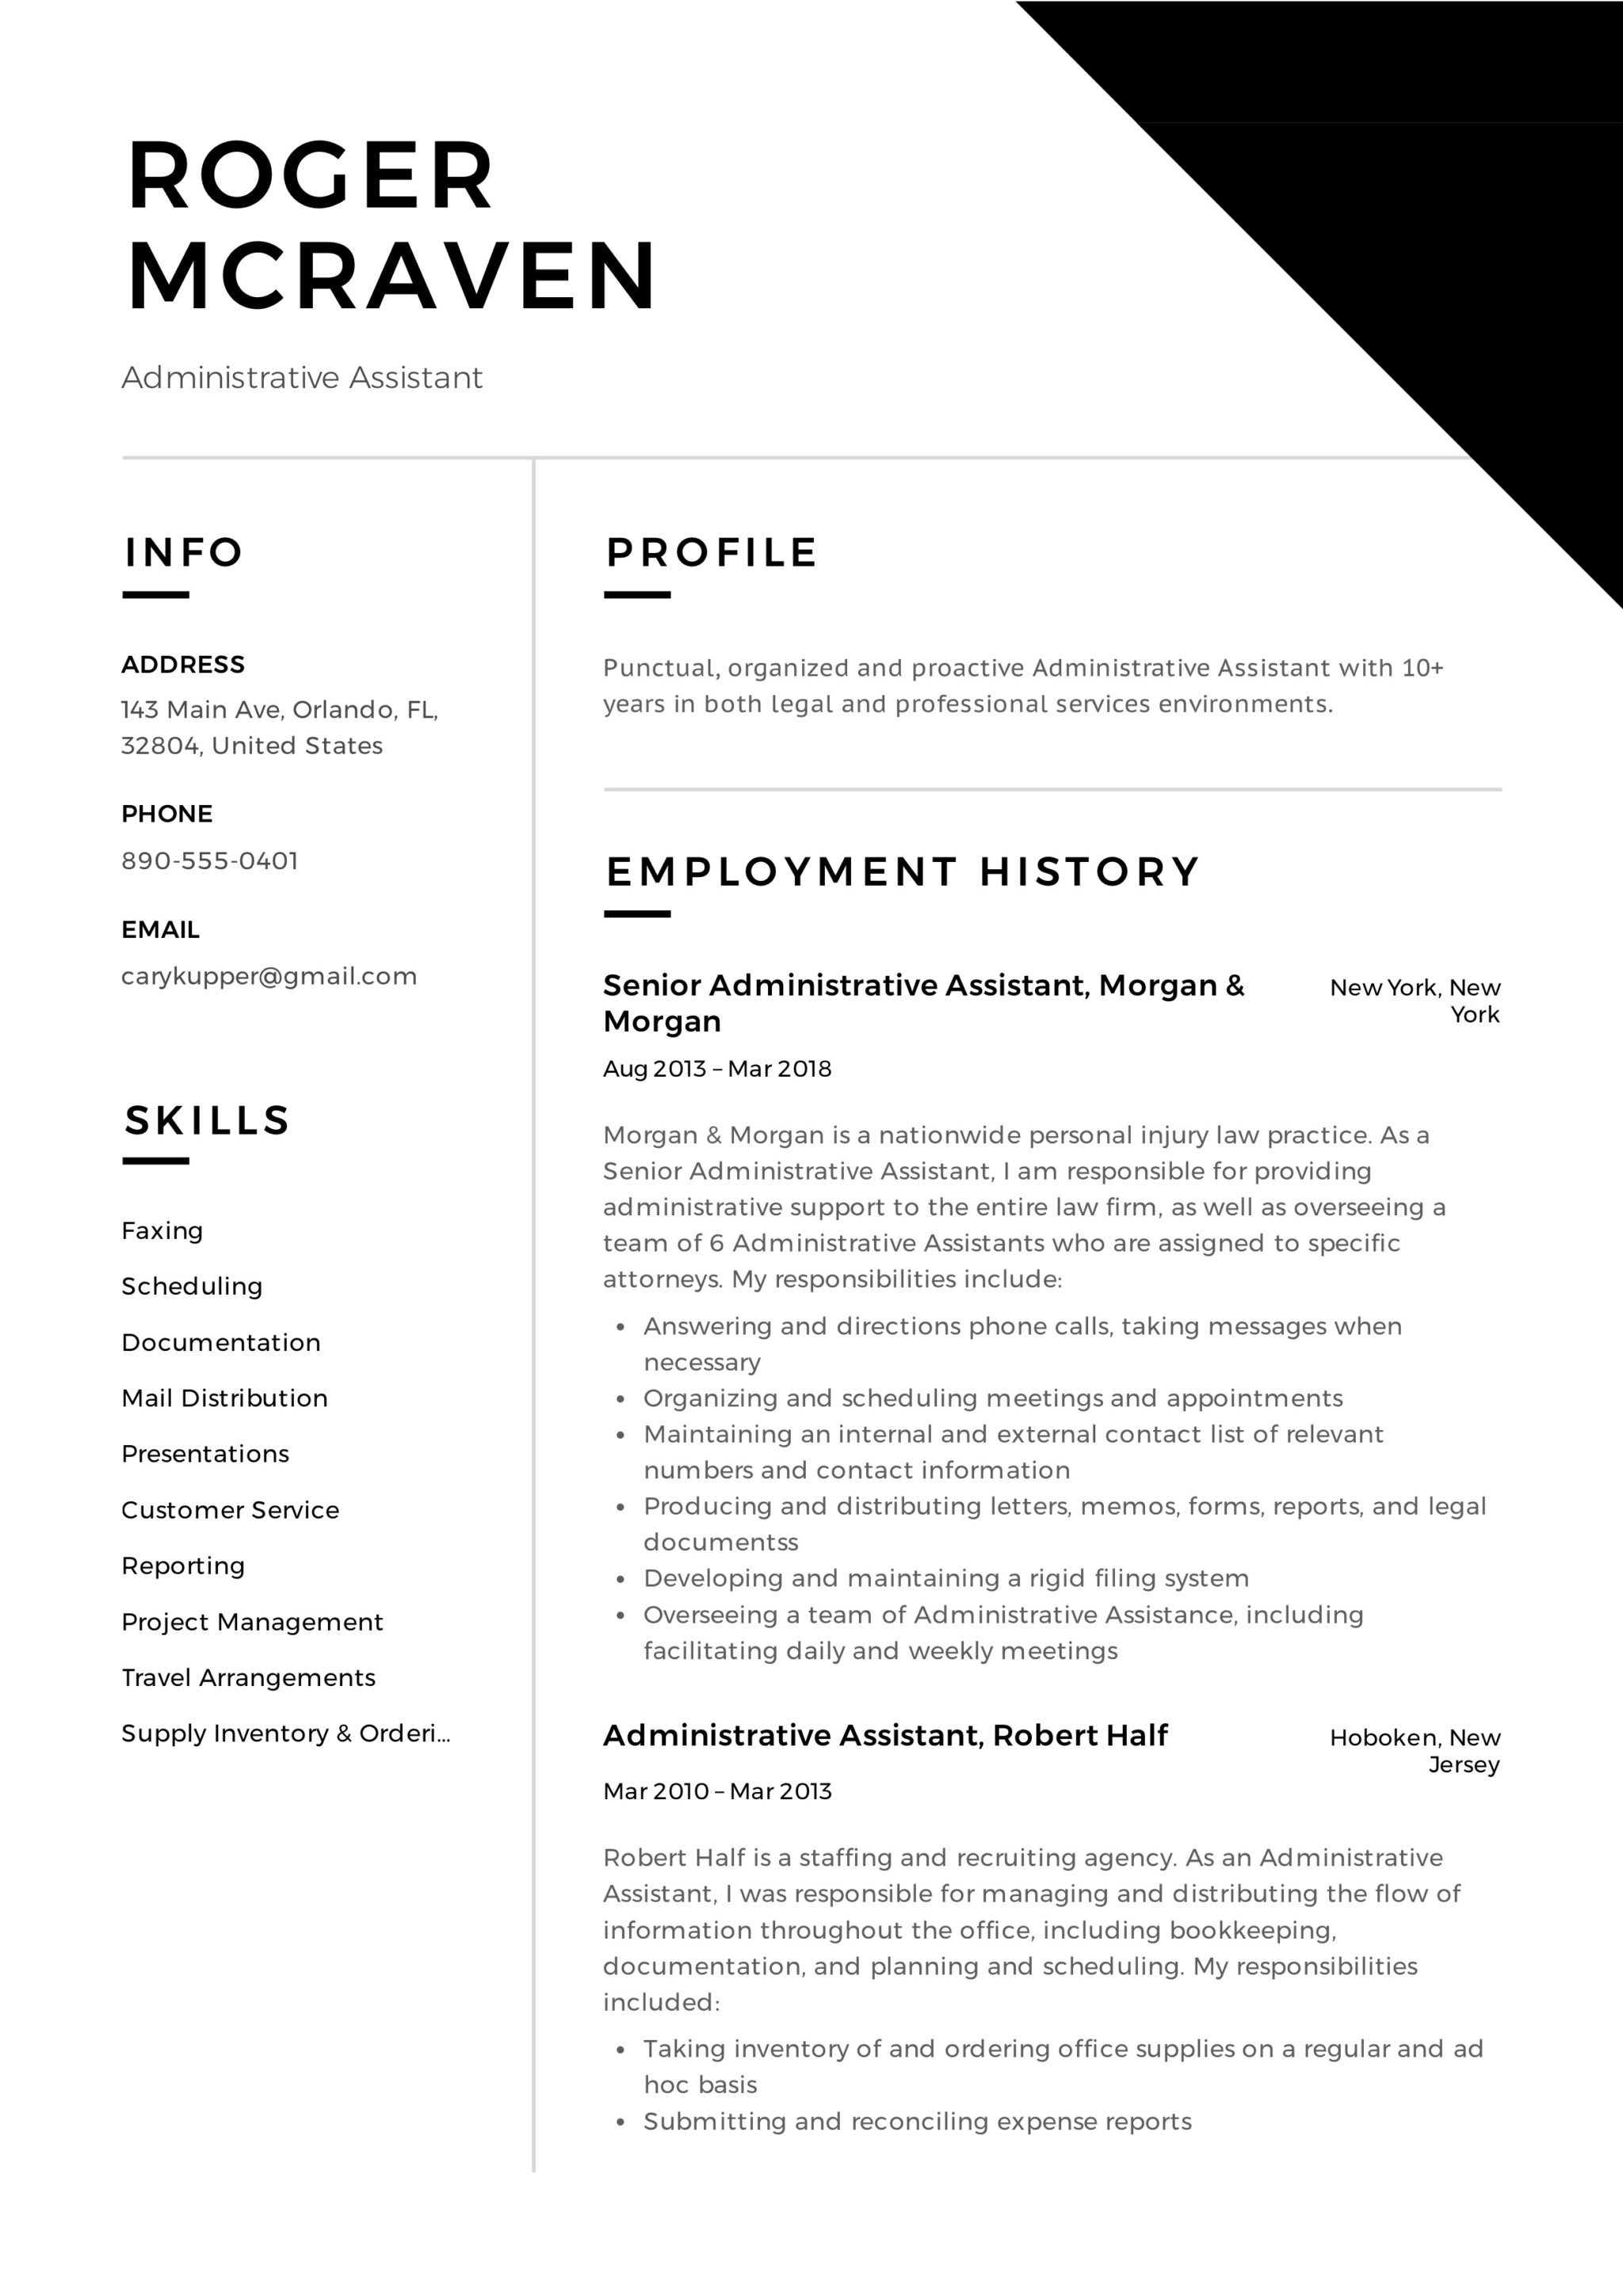 Administrative Assistant Design Resume